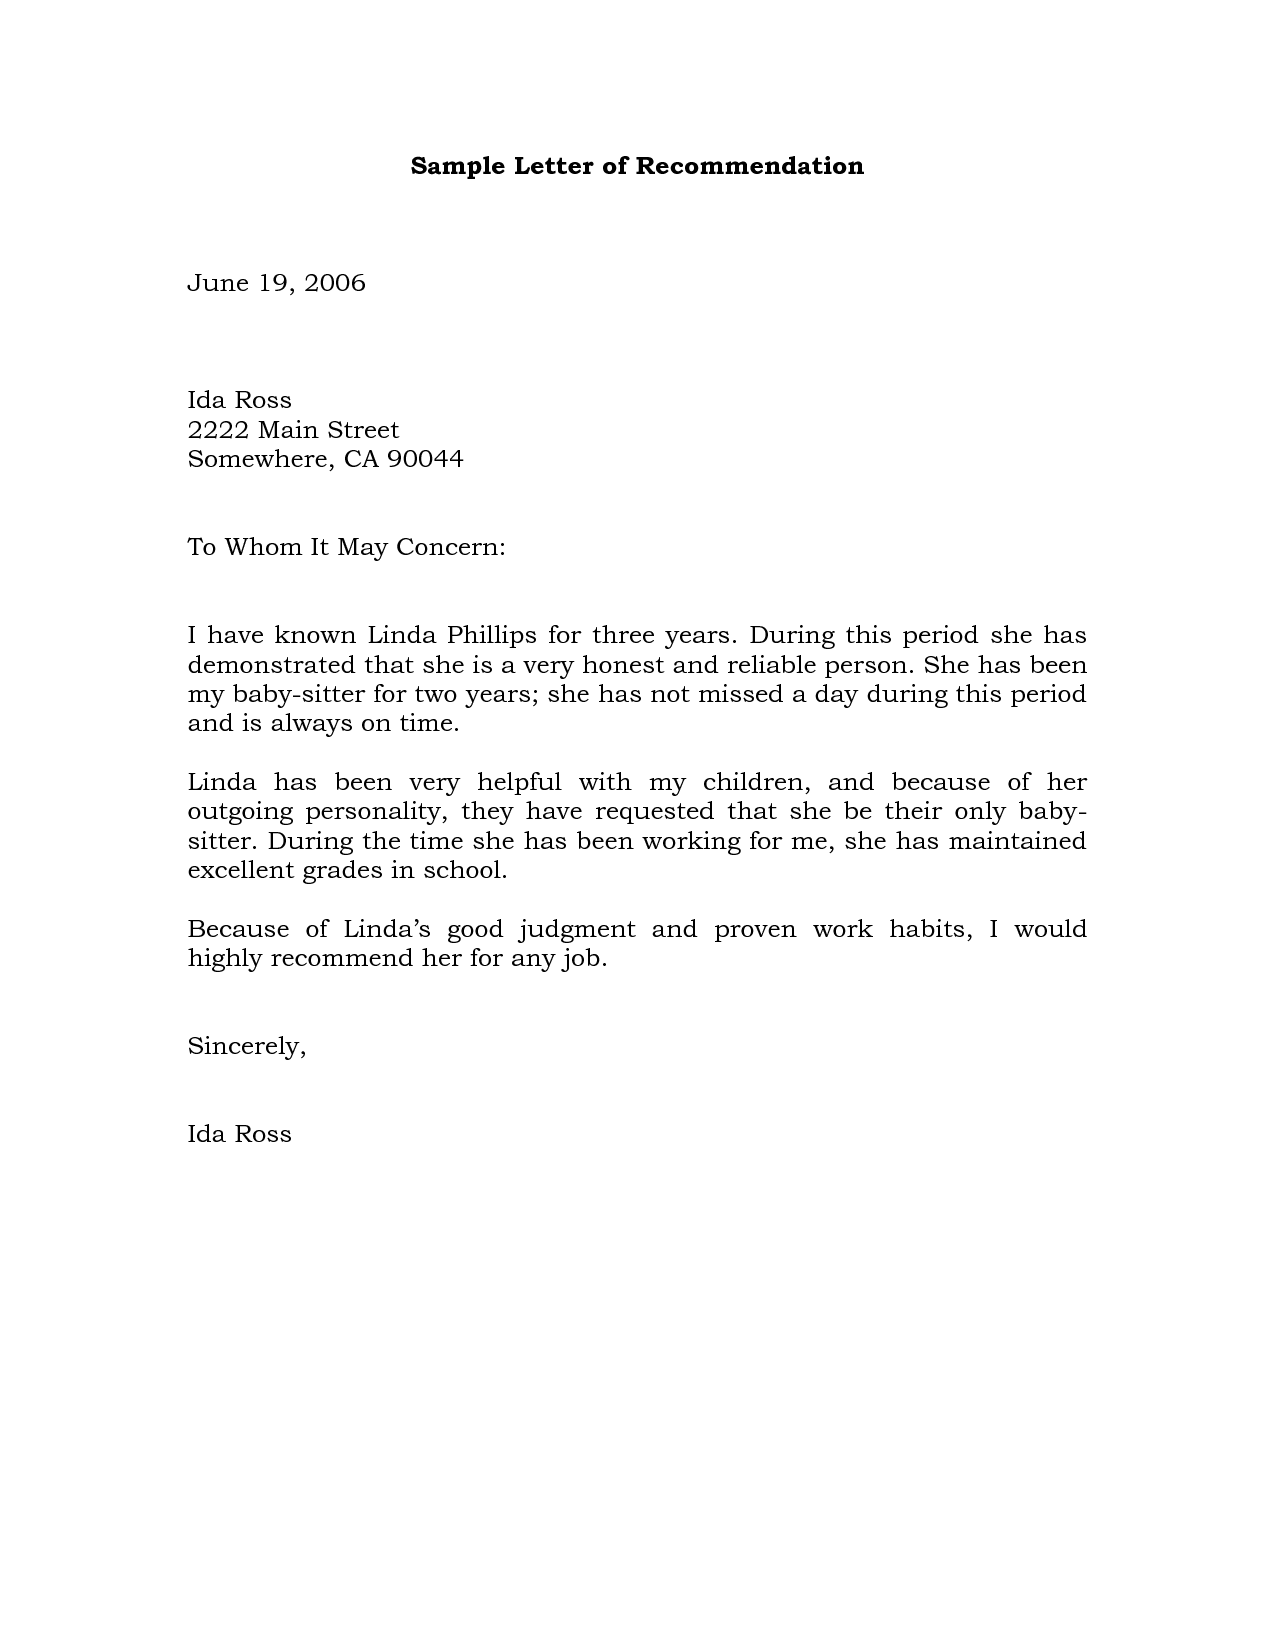 Business Recommendation Letter Here is a sample recommendation – Sample Professional Letter of Recommendation for Job